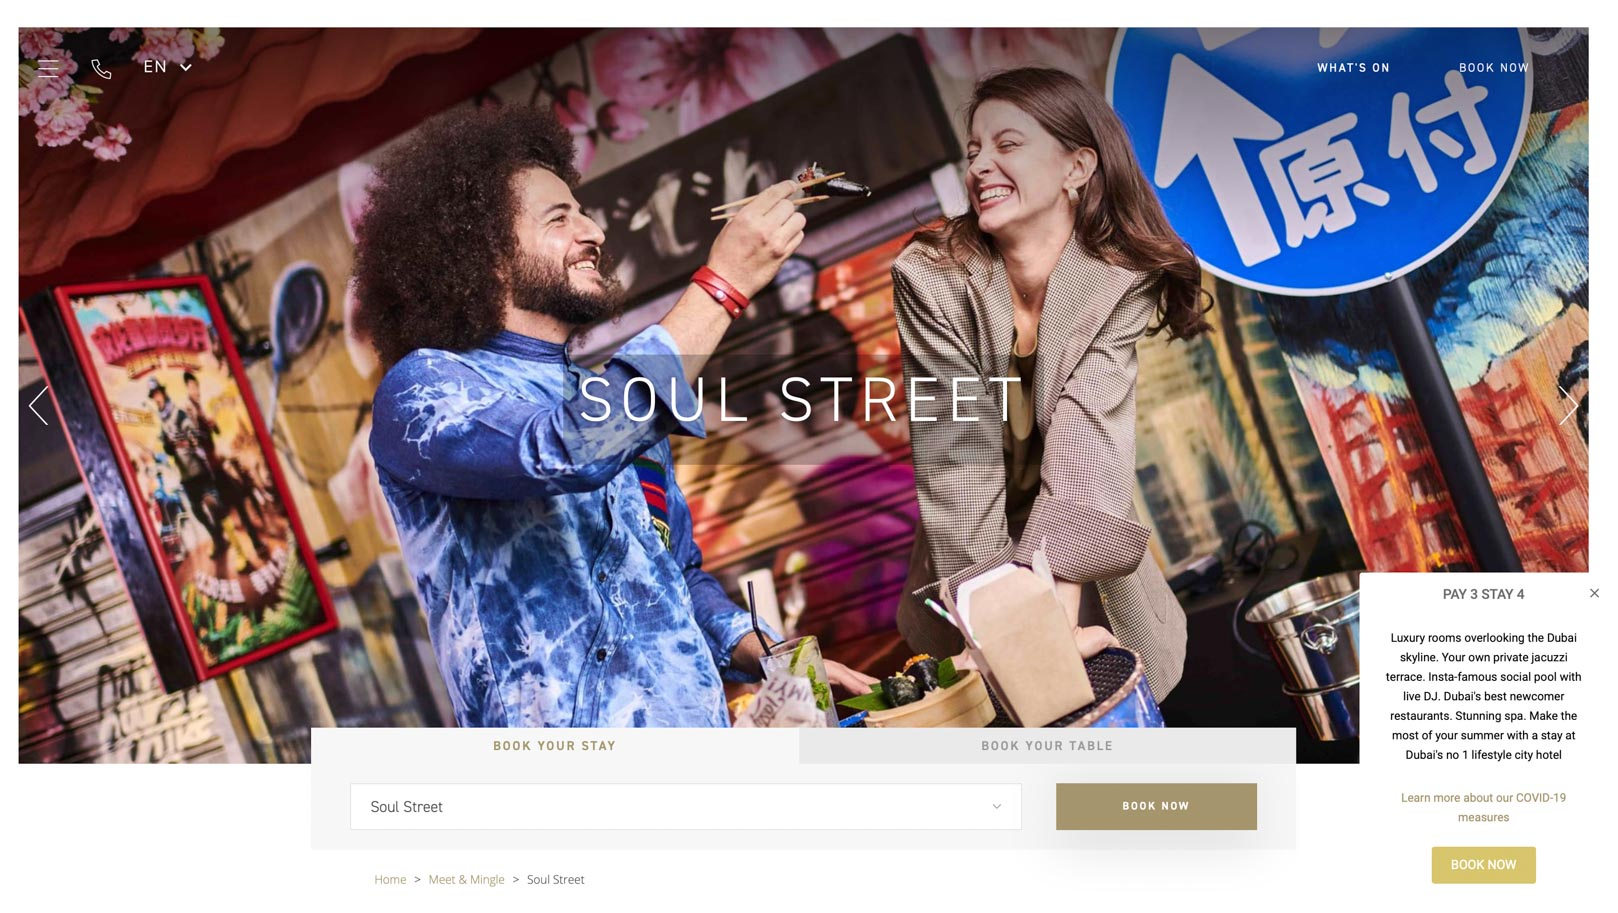 Five Hotels and Resorts - Soul Street JVC Published Photos